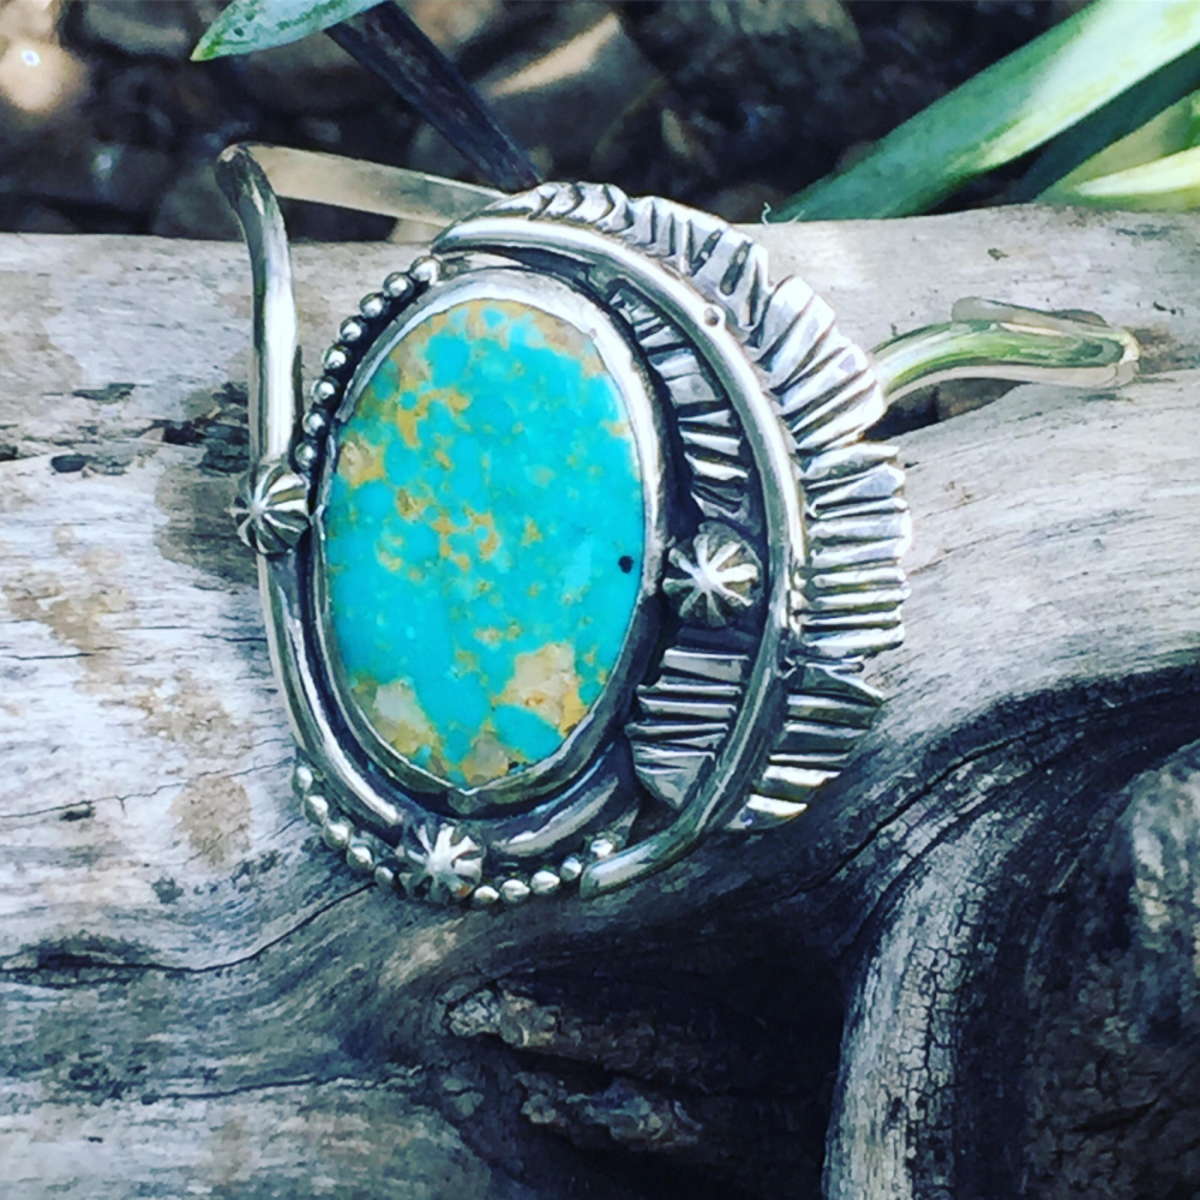 Turquoise can often be found set into jewellery.